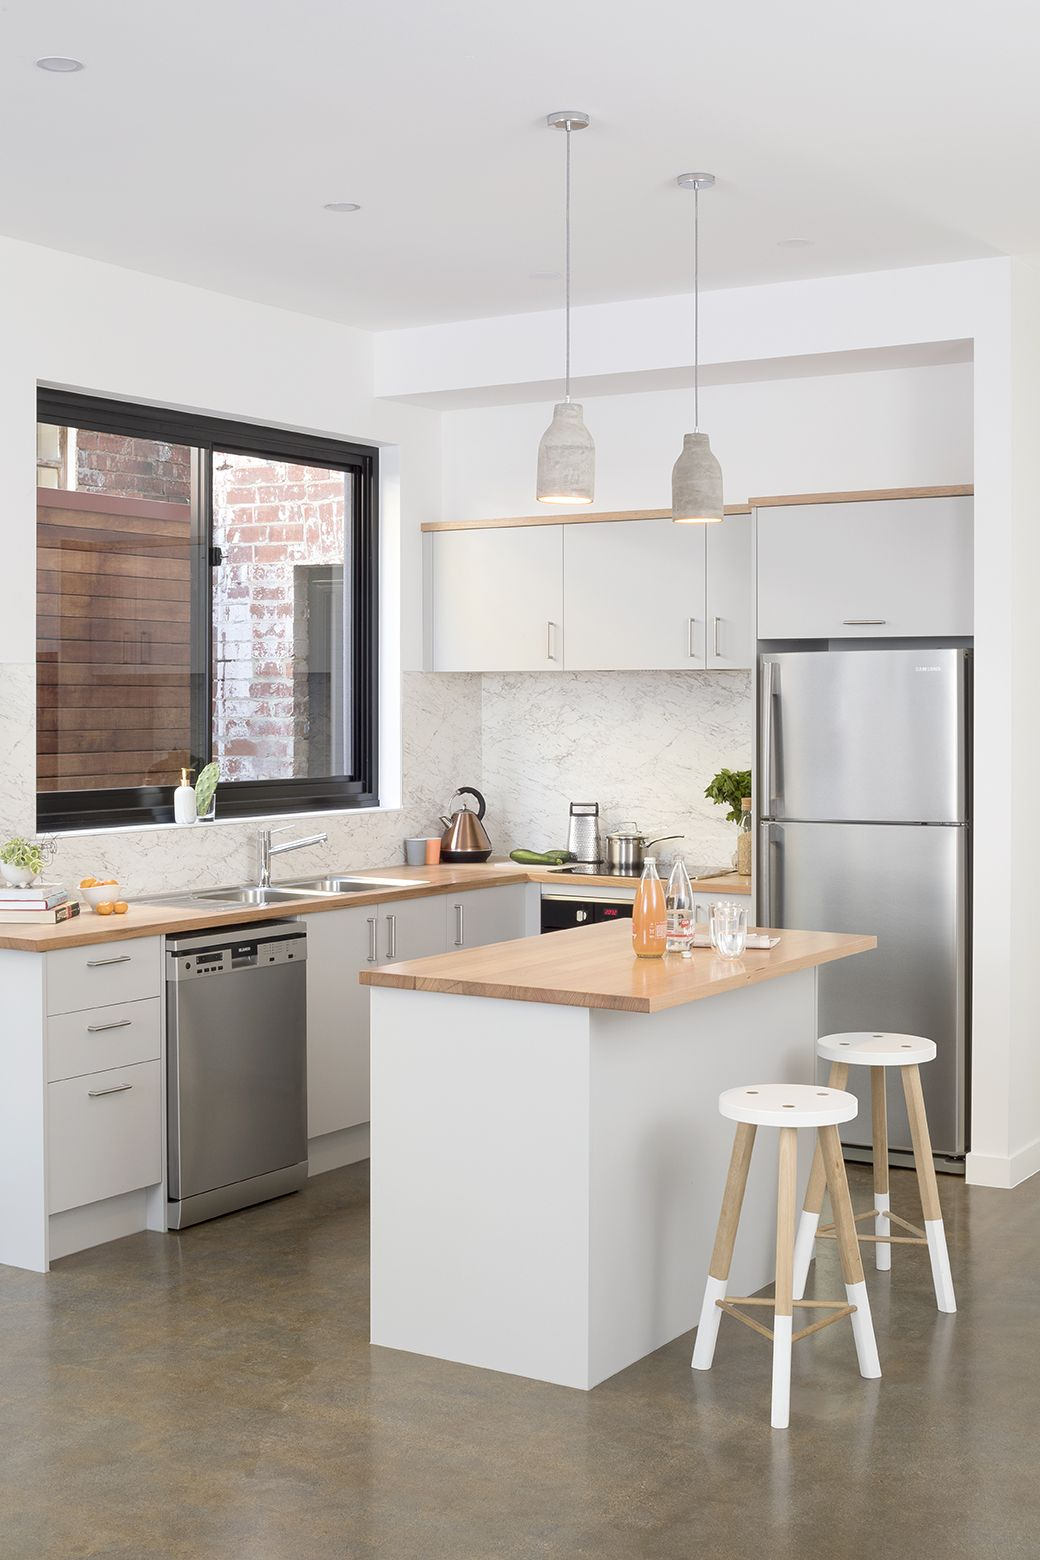 Apartment Living This Kitchen Features White Pepper Doors With